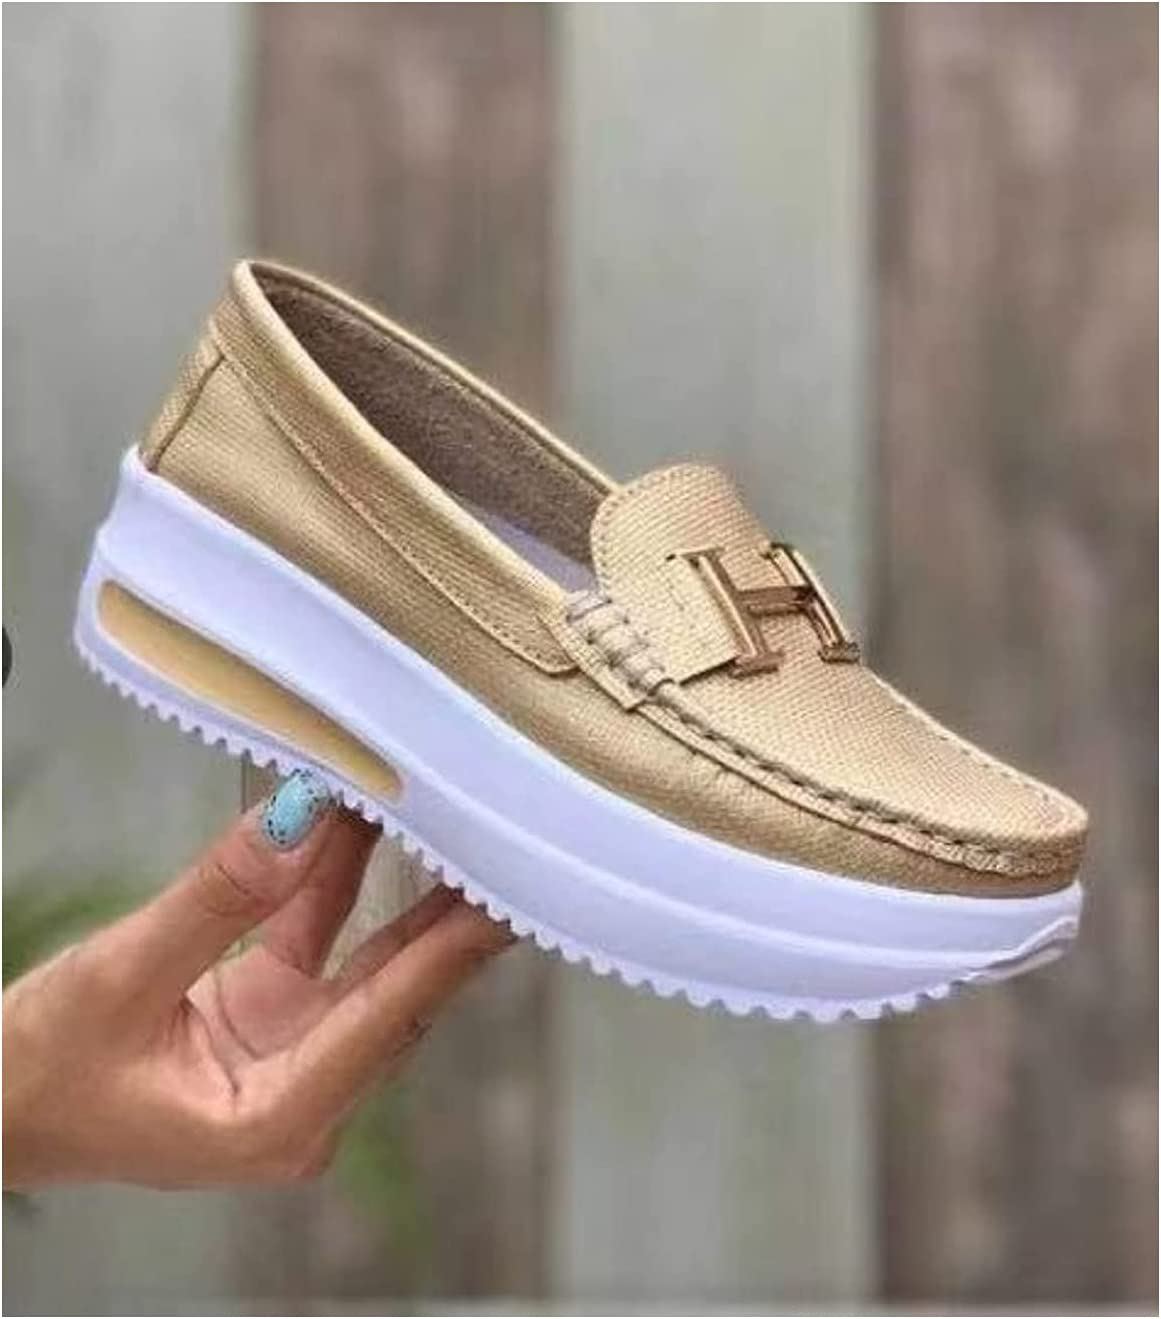 half Women Slip On shopping Loafers Breathable Non-S Shoes Casual Walking Flat